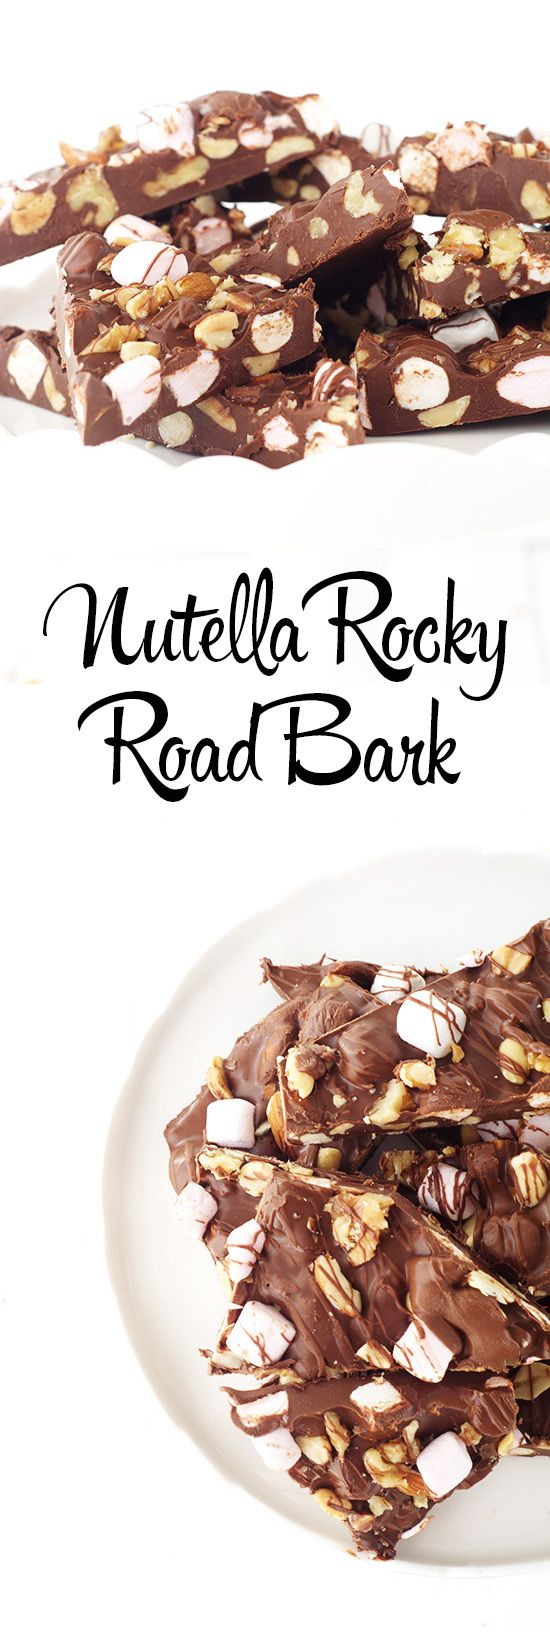 Nutella rocky road bark is the perfect snack or dessert. Melt chocolate and mix in Nutella and stir until combined completely. Add nuts and marshmallows to the mixture. Pour onto a parchment paper lin